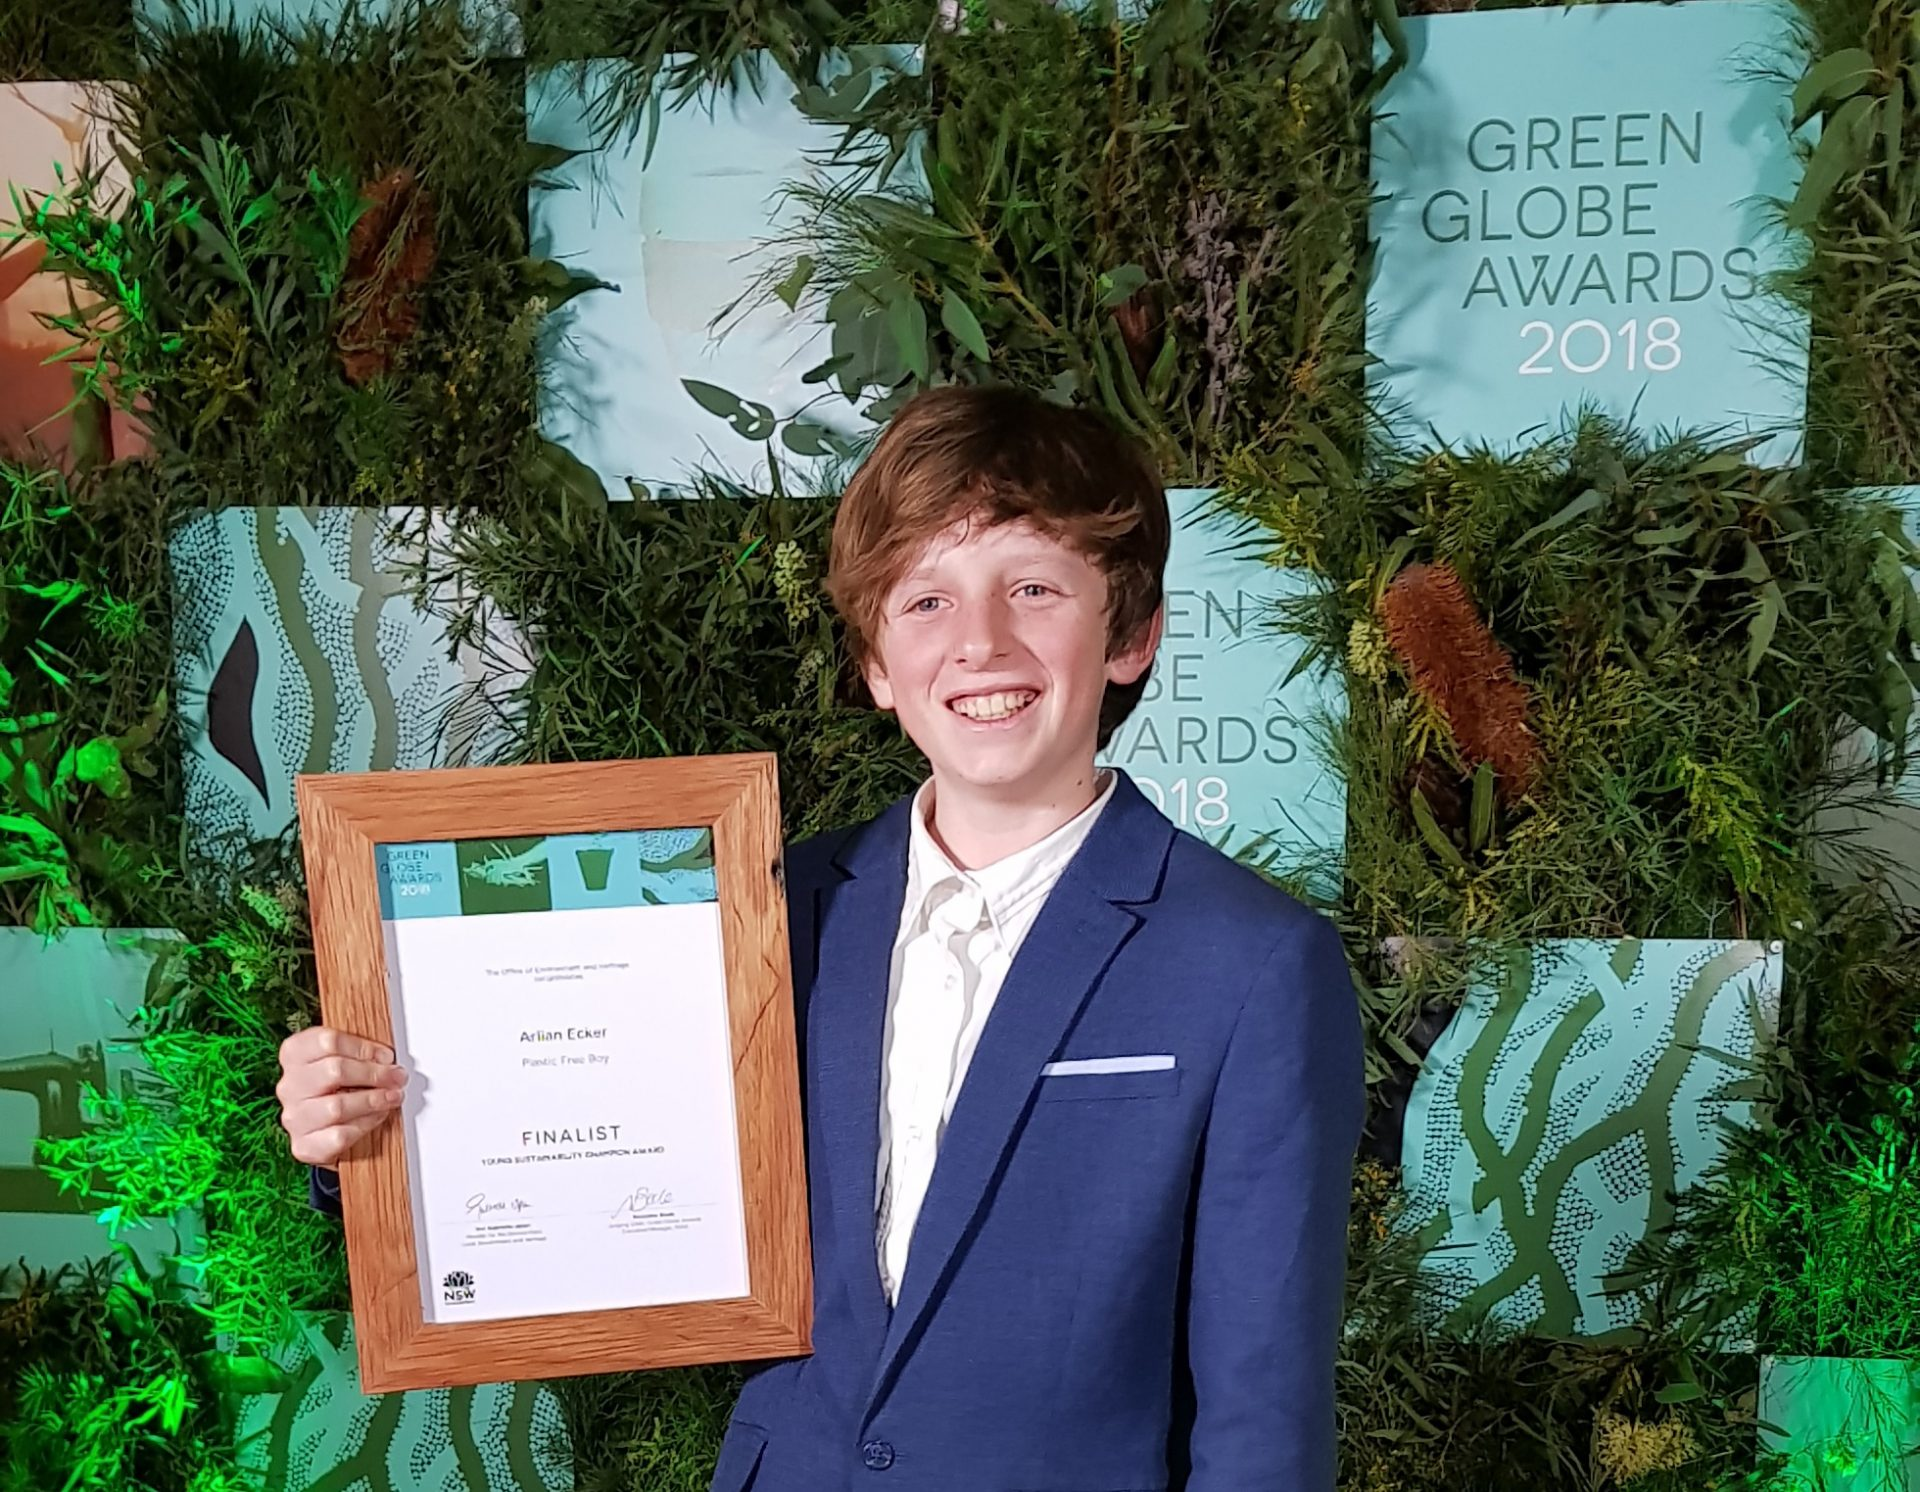 NSW Department of Environment Green Globe Awards Nomination